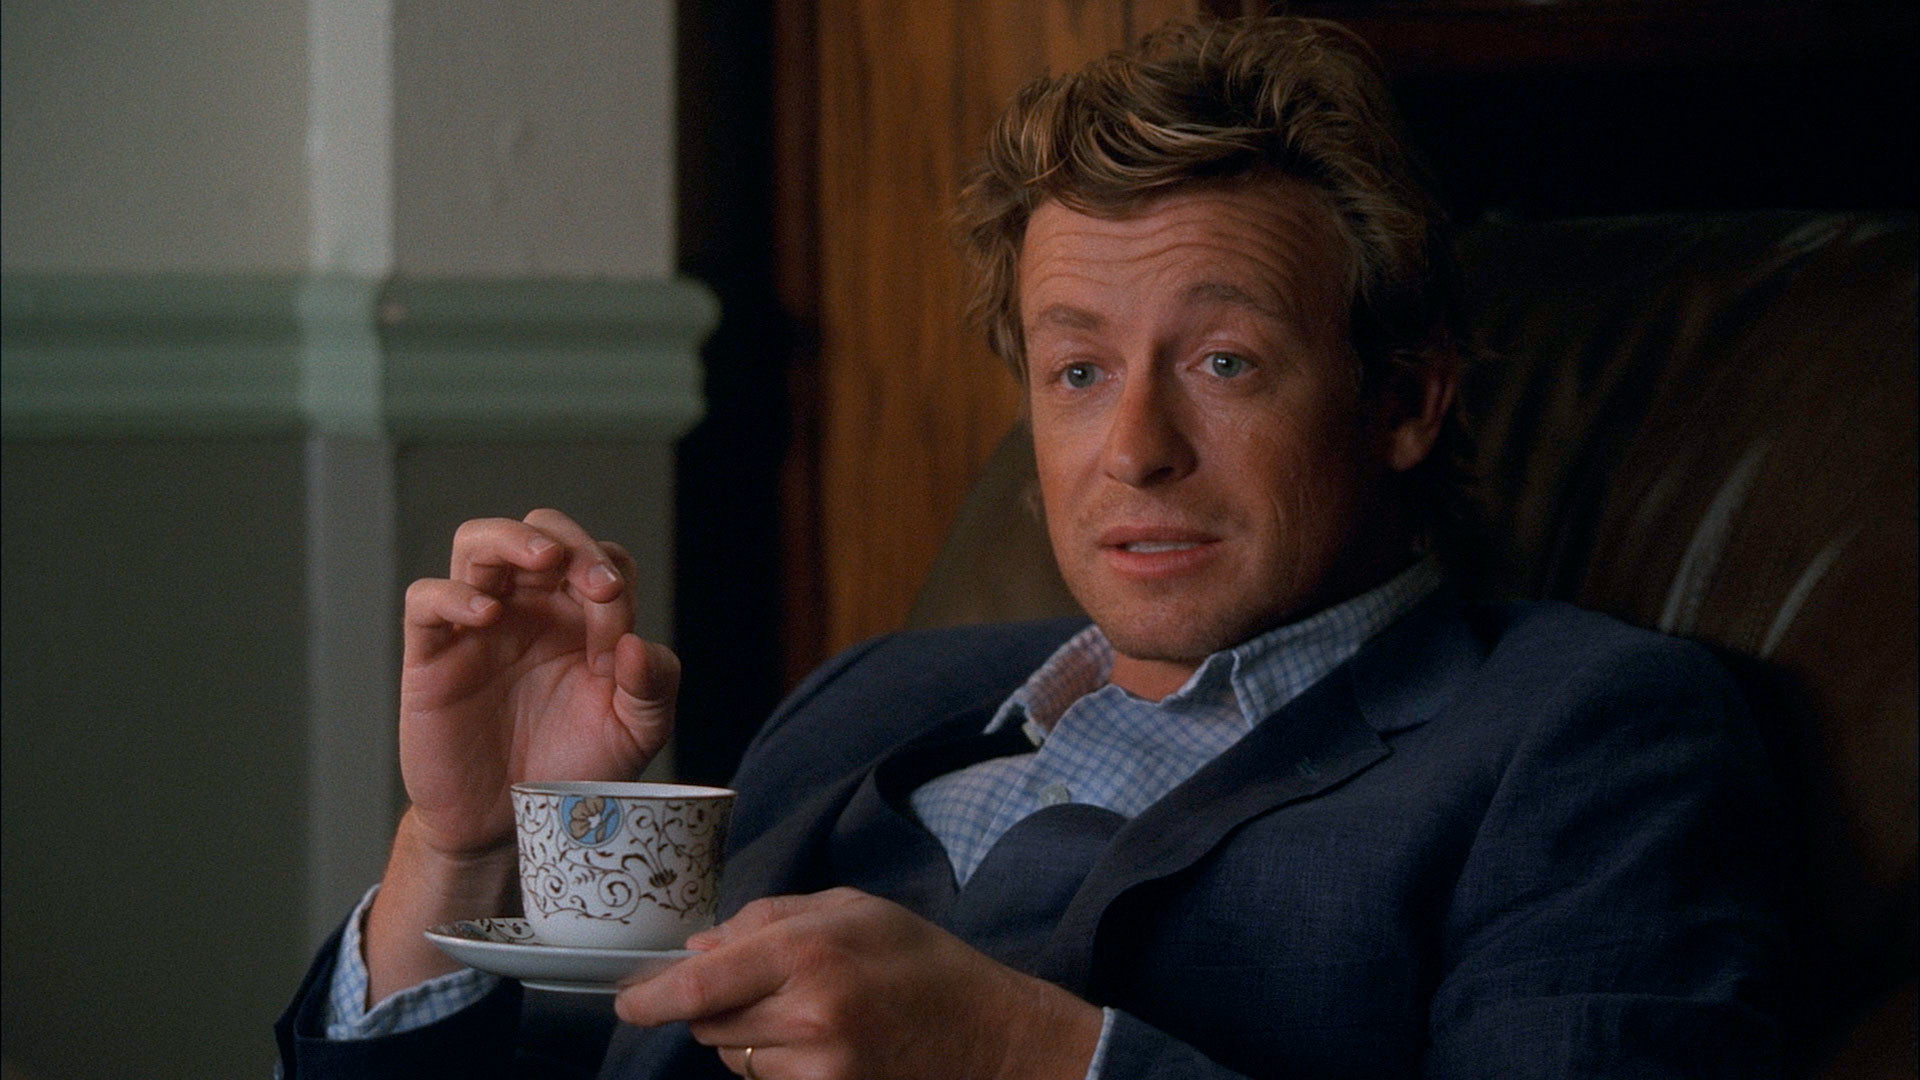 1920x1080 The Mentalist Wallpapers Wallpaper 1920×1080 The Mentalist Wallpapers (40  Wallpapers) | Adorable